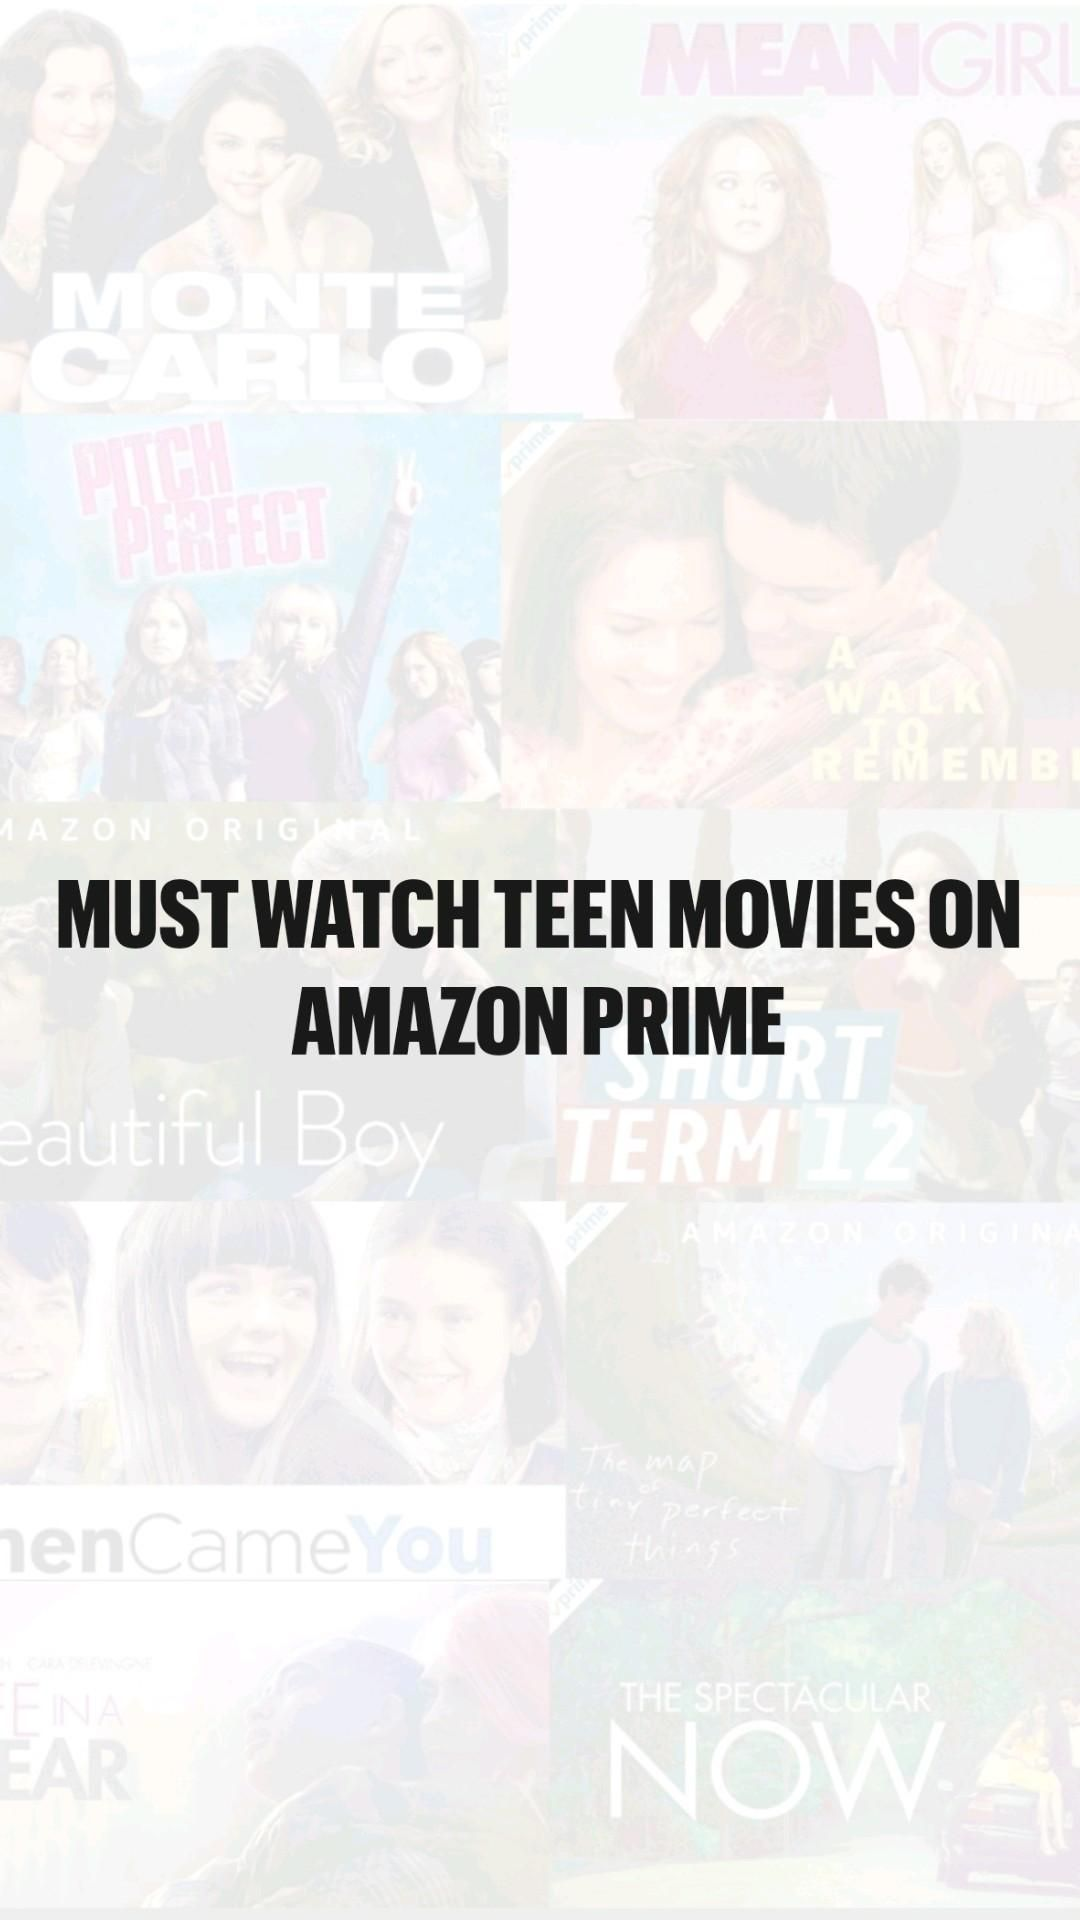 Must watch teen movies on Amazon prime